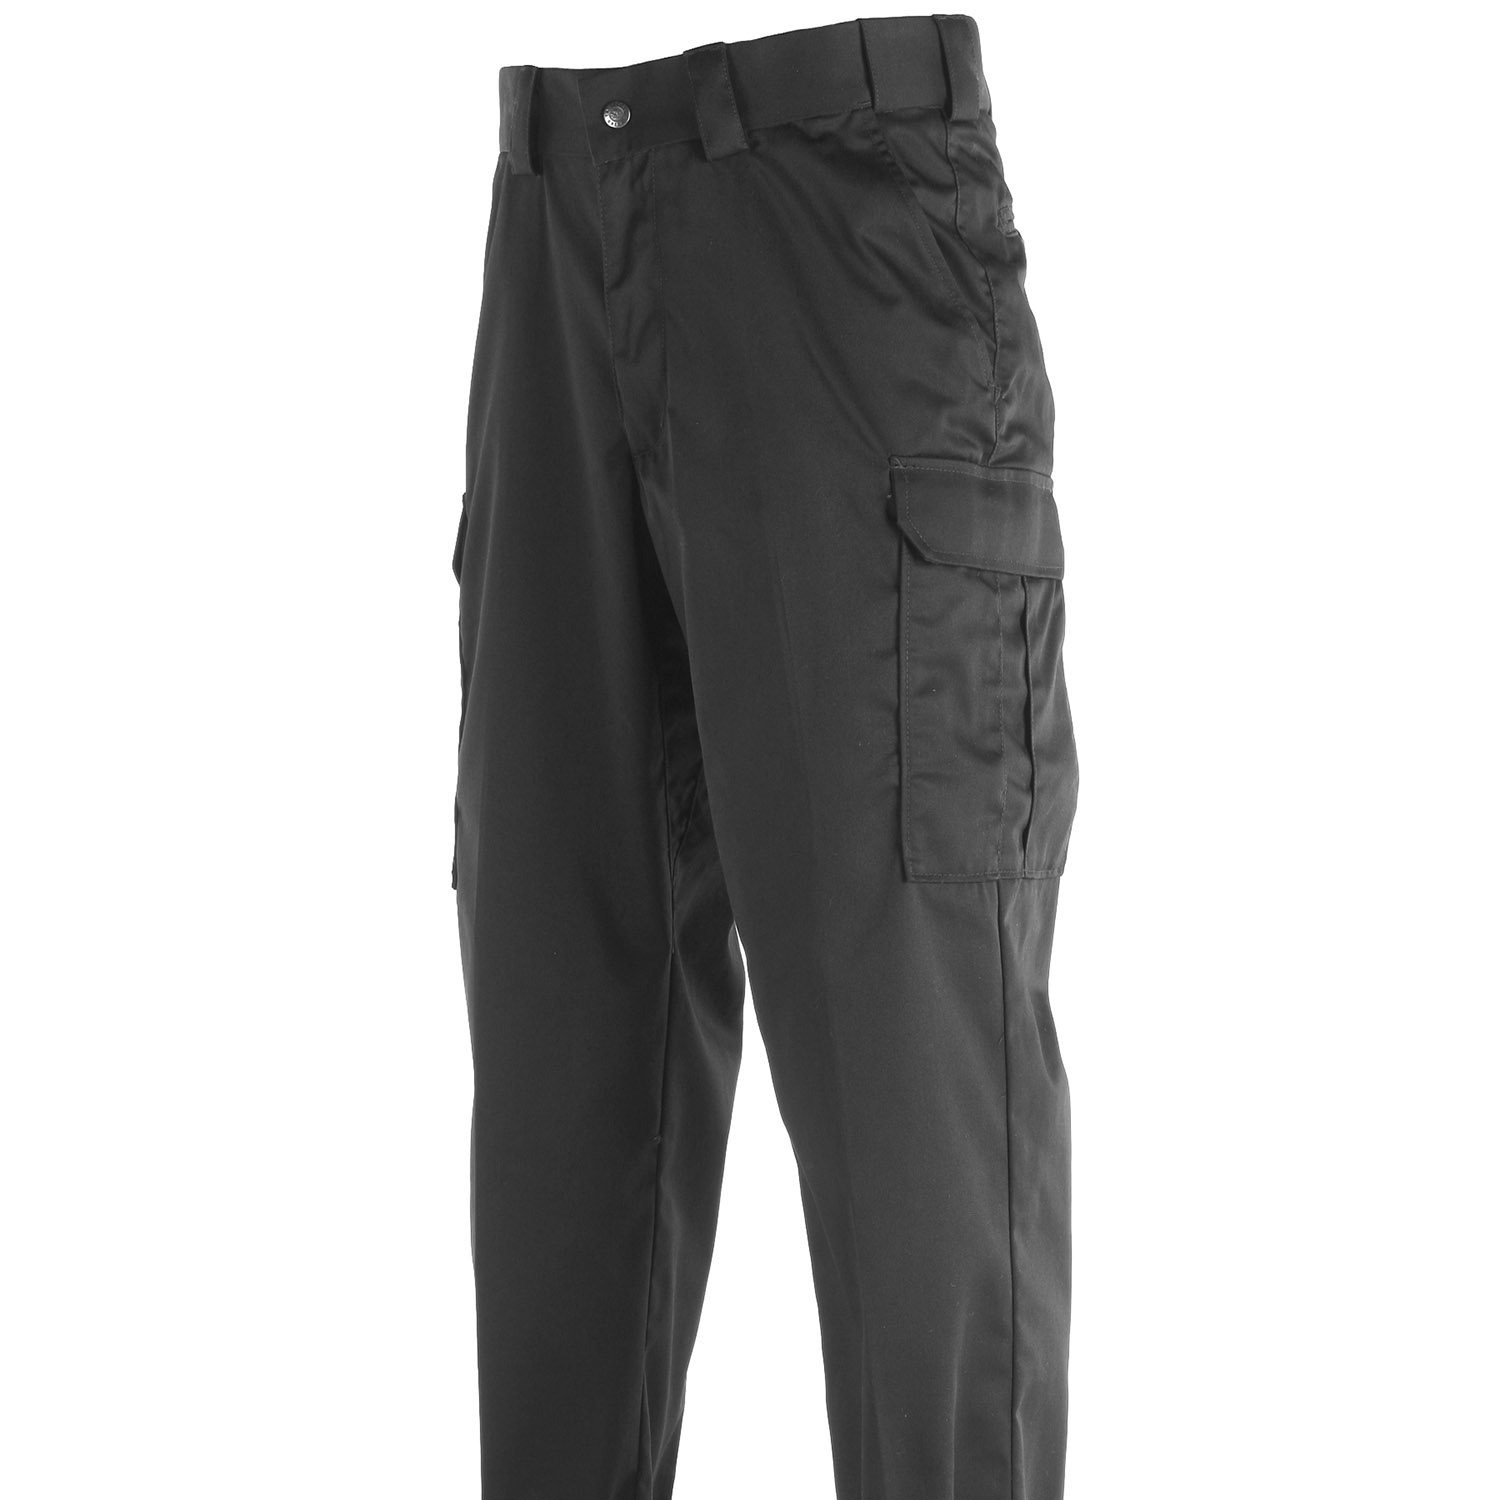 5.11 Tactical Men's PDU Pants